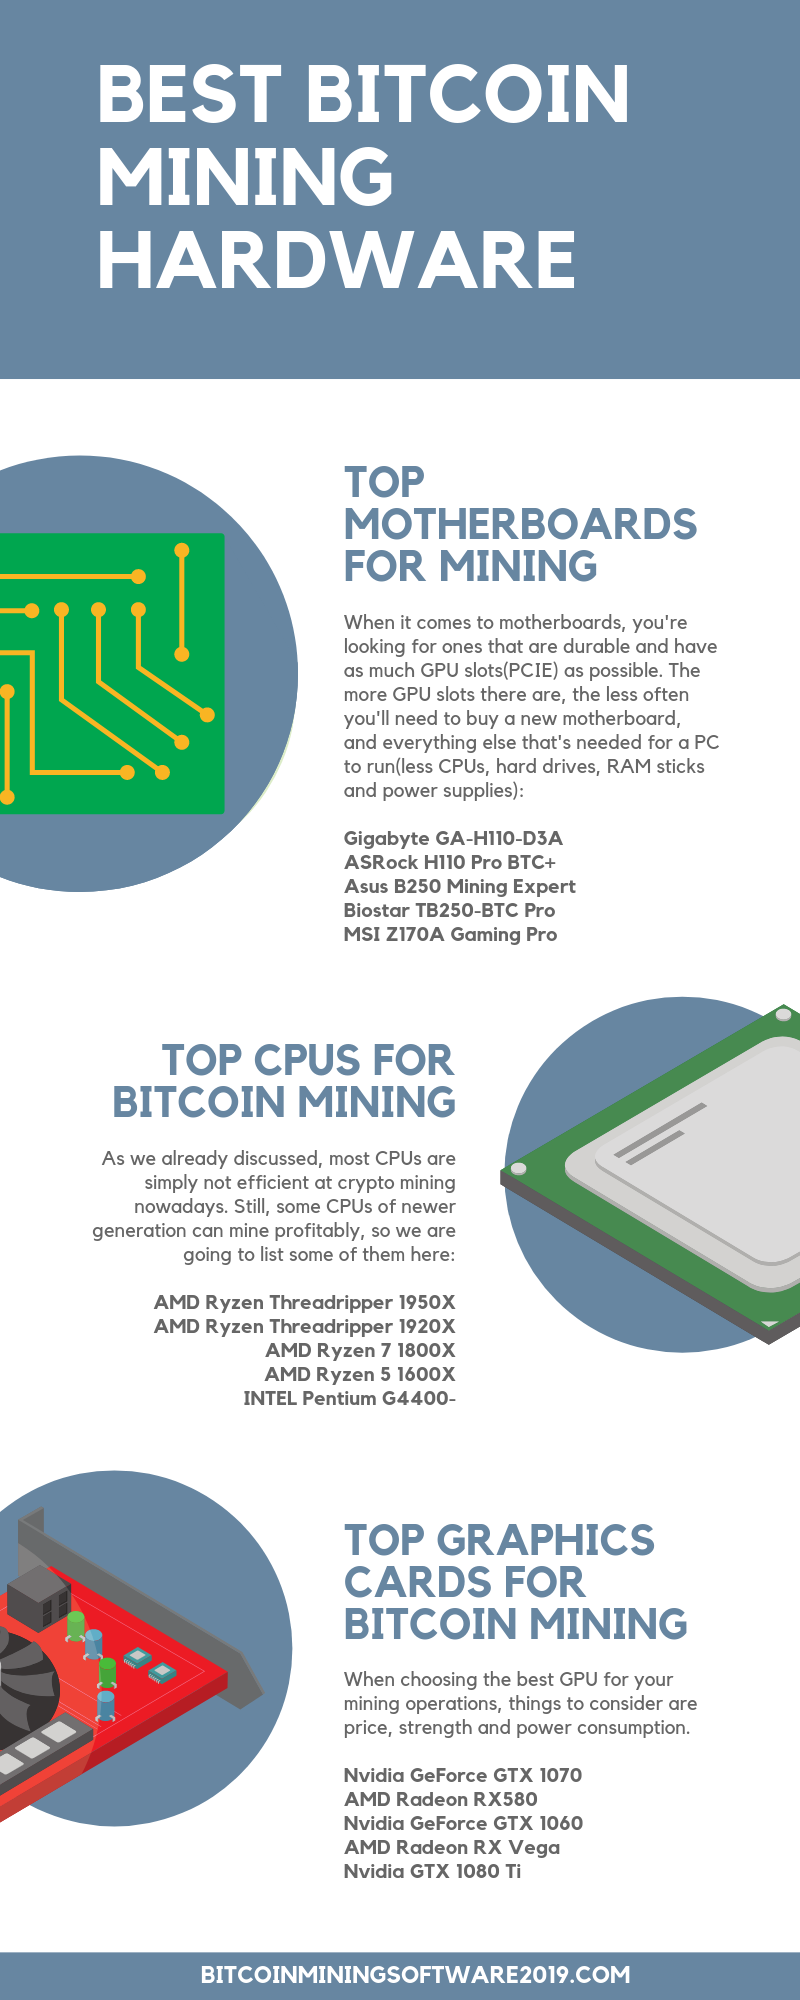 Best Bitcoin Mining Hardware